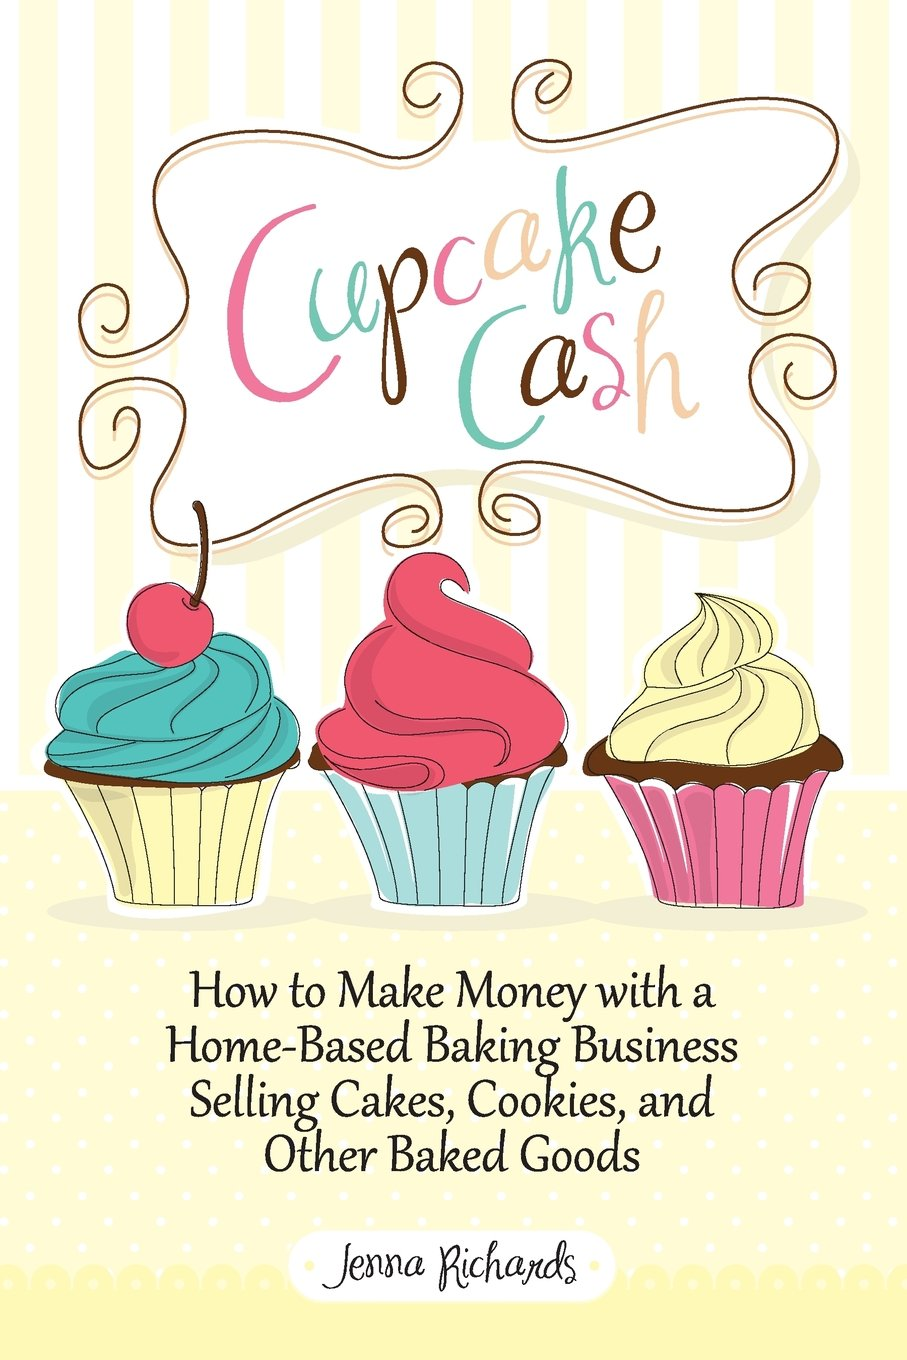 Cupcake Cash - How to Make Money with a Home-Based Baking Business ...